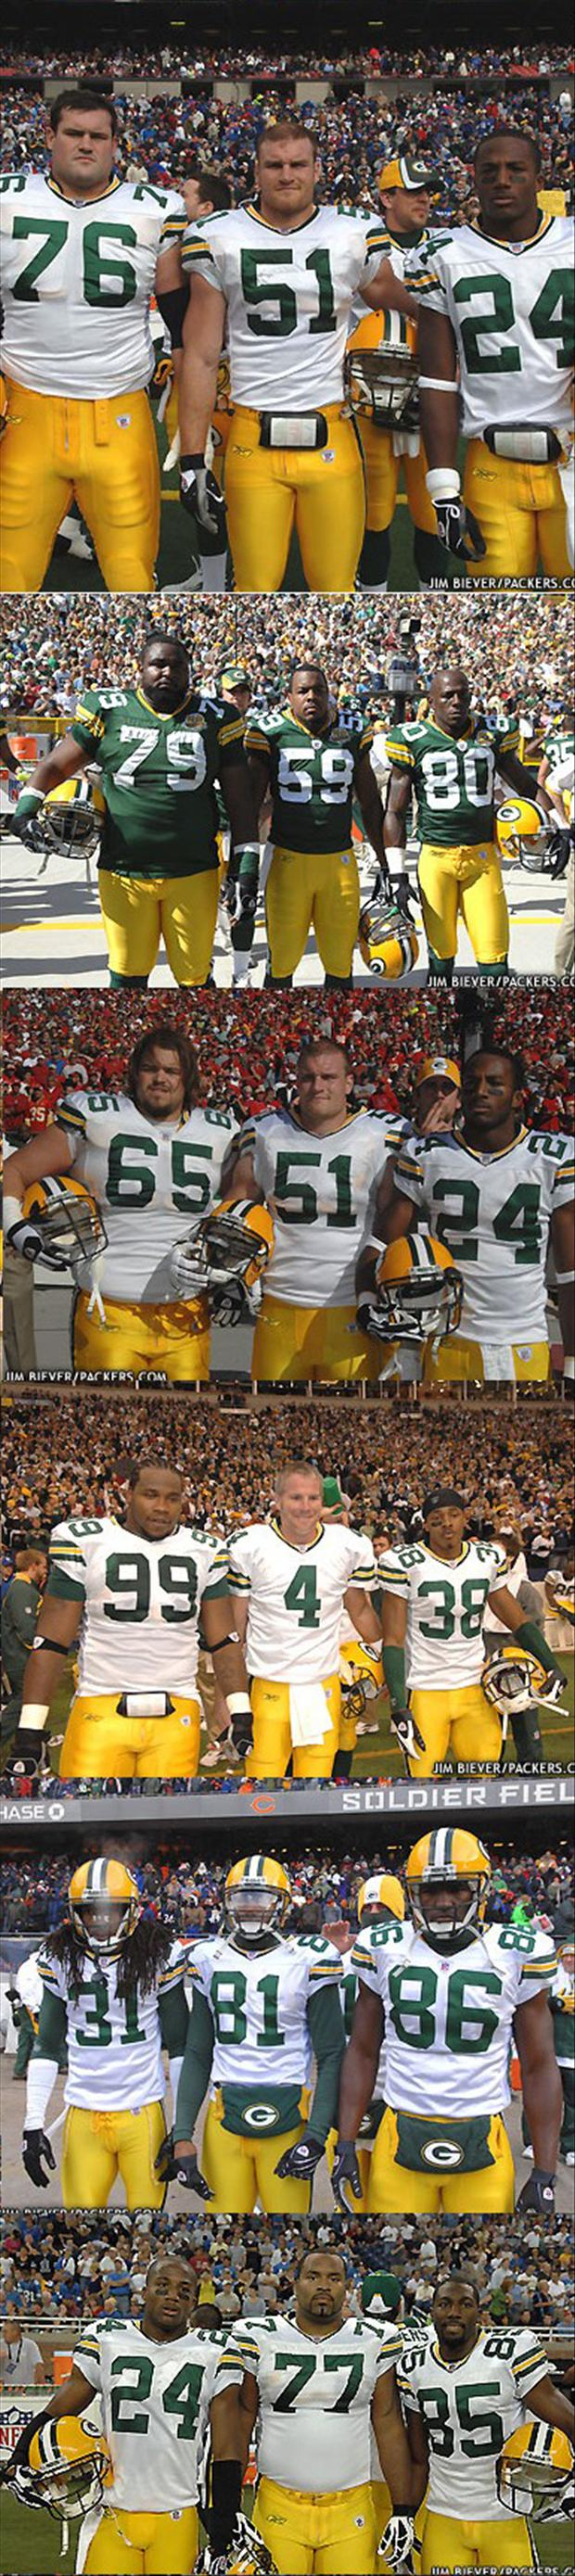 Aaron Rodgers Photobomb pictures (2)